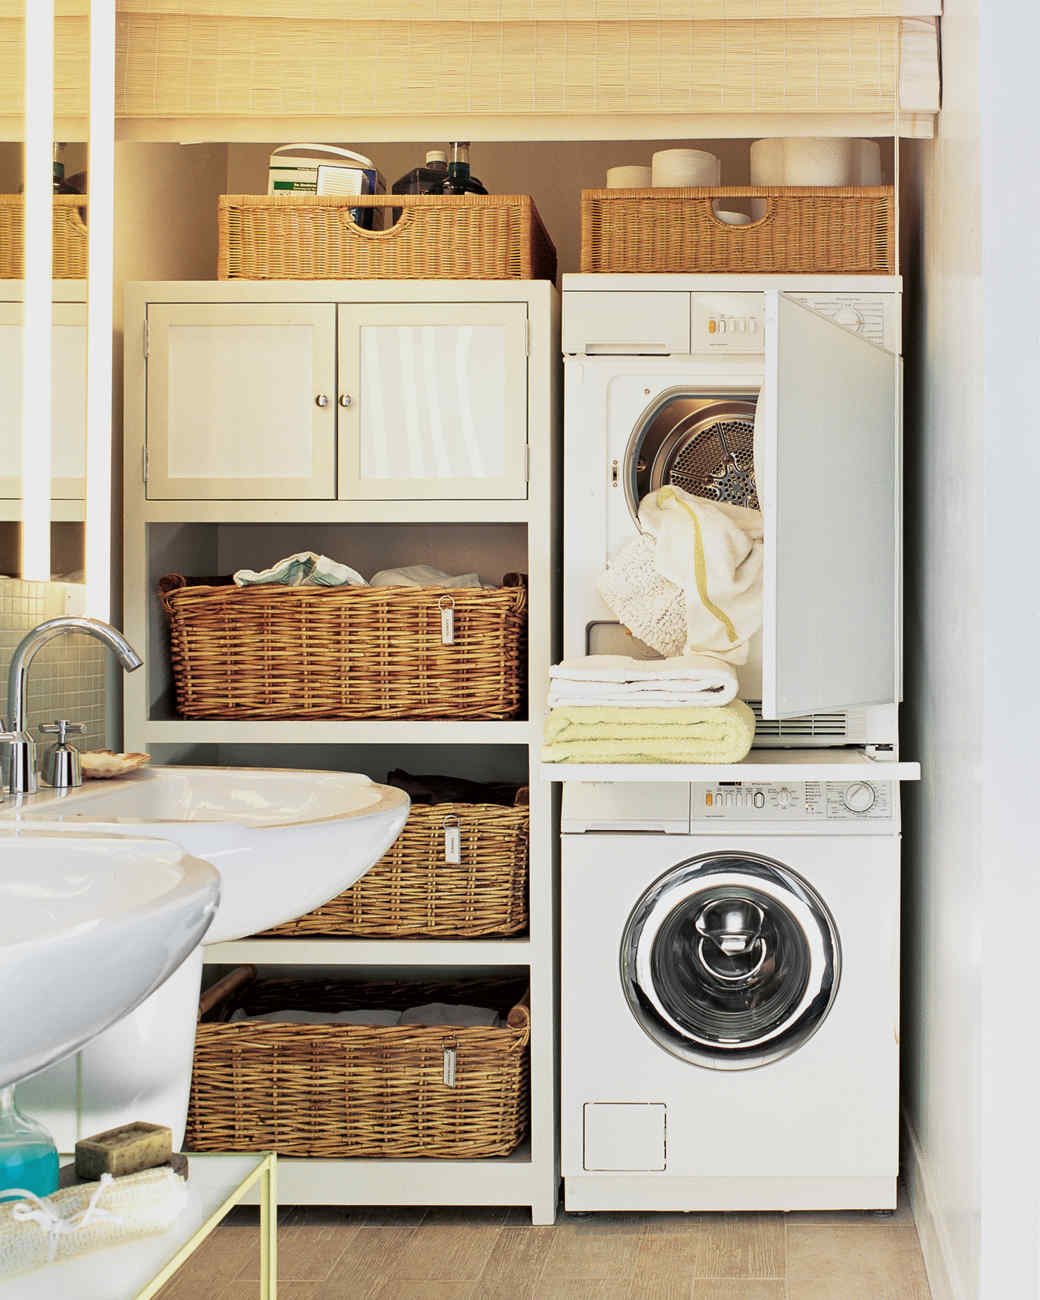 12 essential laundry room organizing ideas martha stewart - Storage Design Ideas